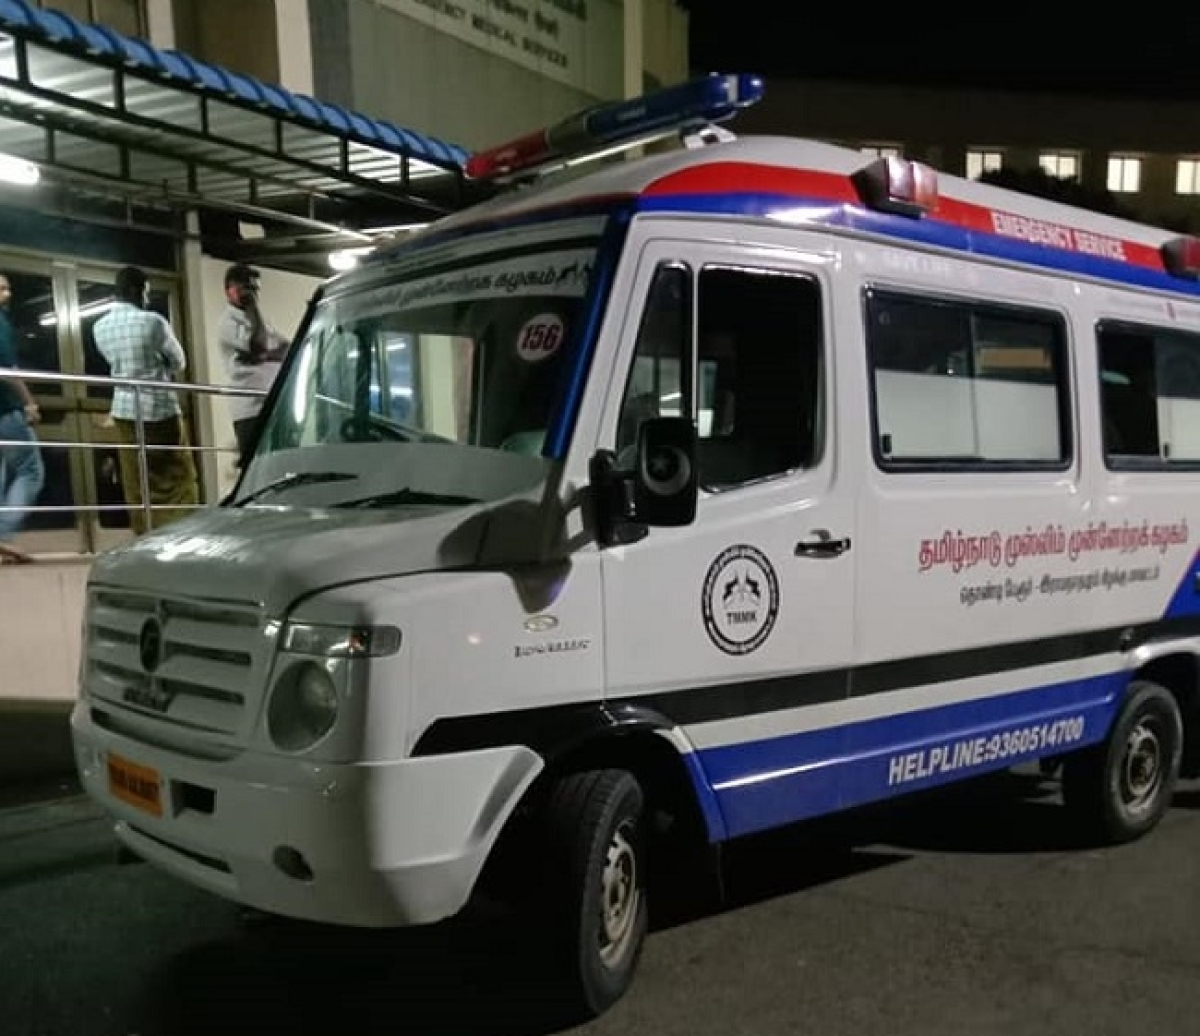 Ambulance which carried the boy